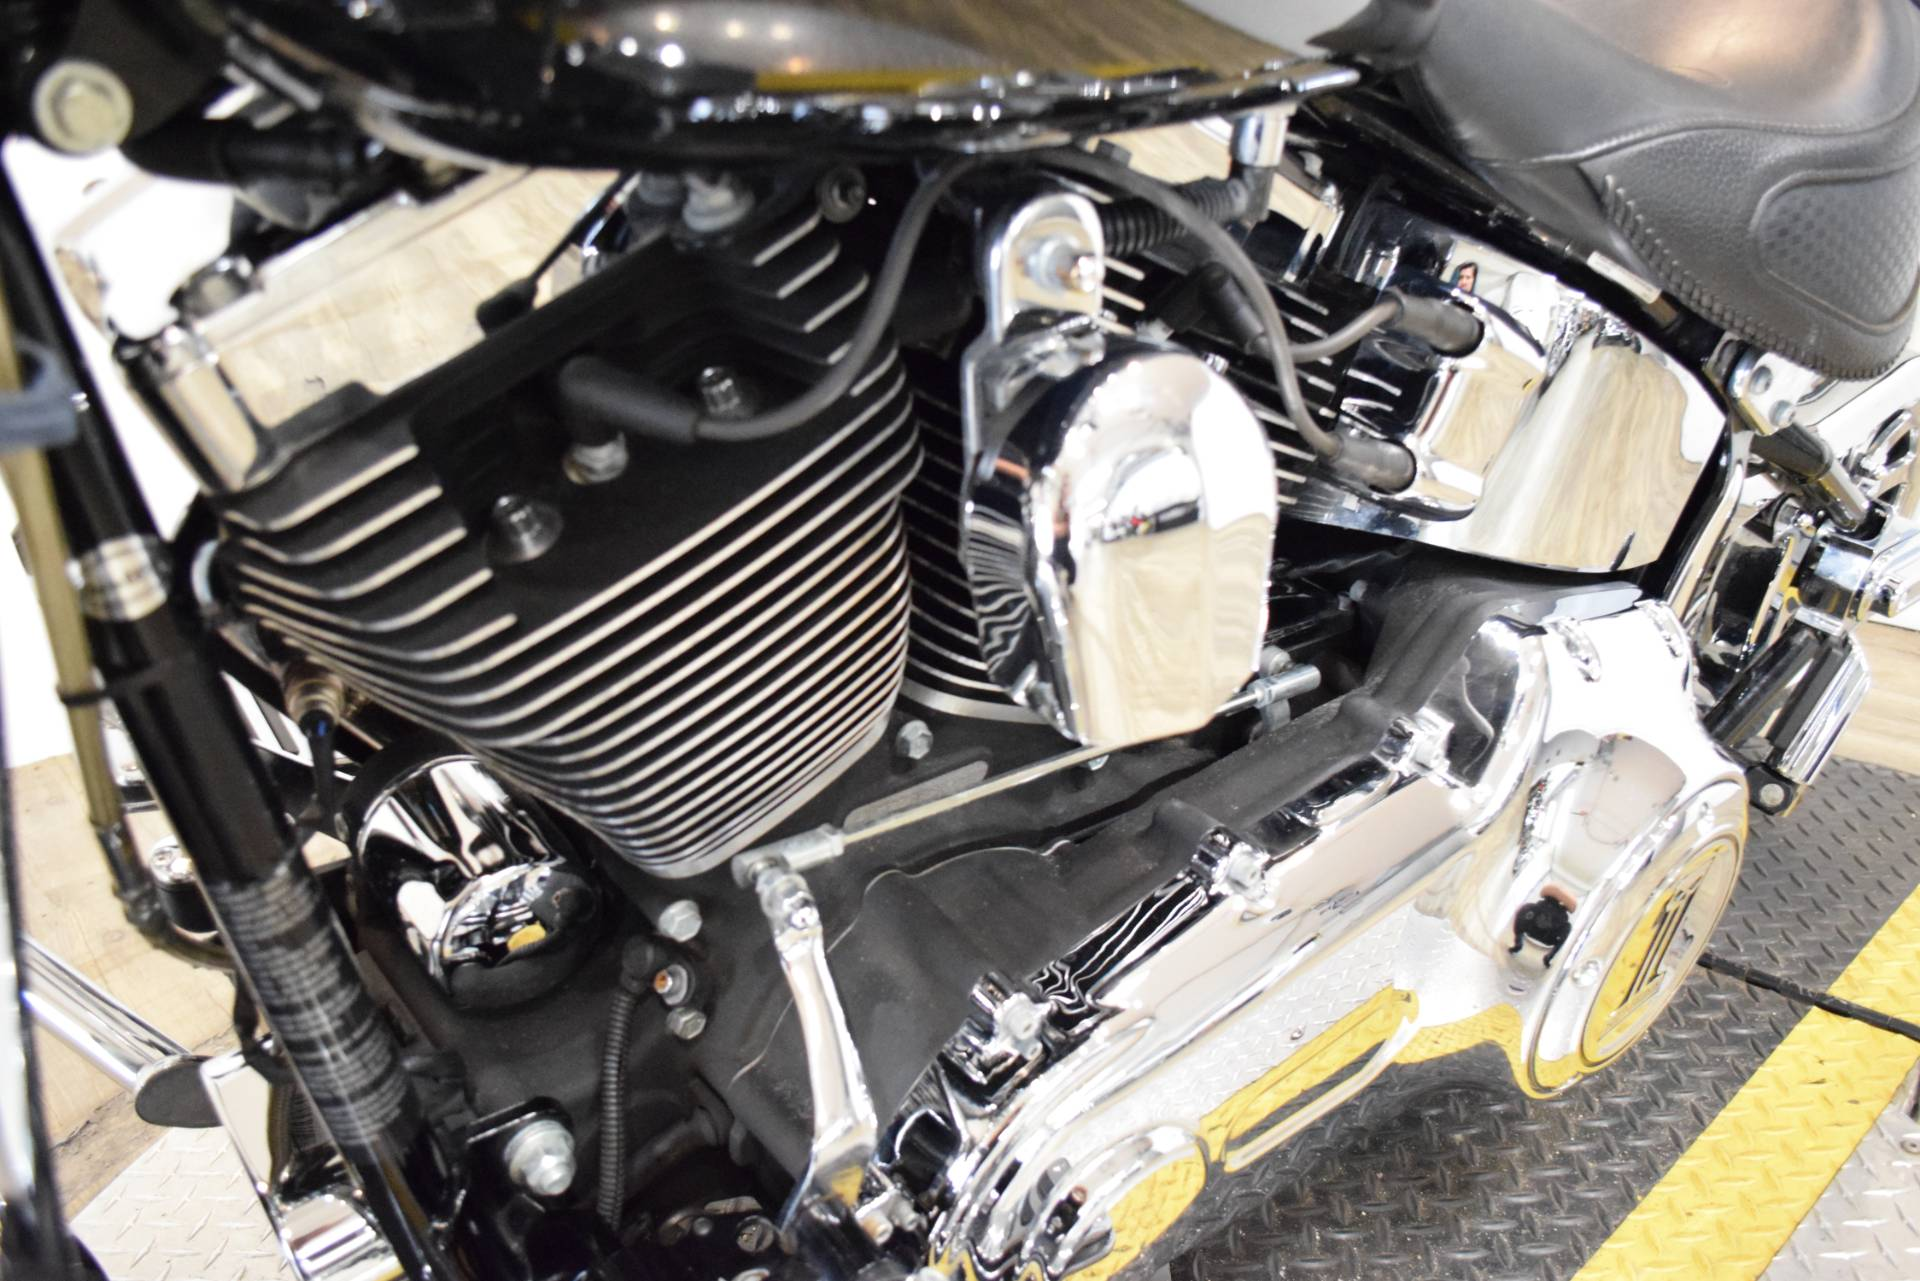 2007 Harley-Davidson Softail Deluxe in Wauconda, Illinois - Photo 20